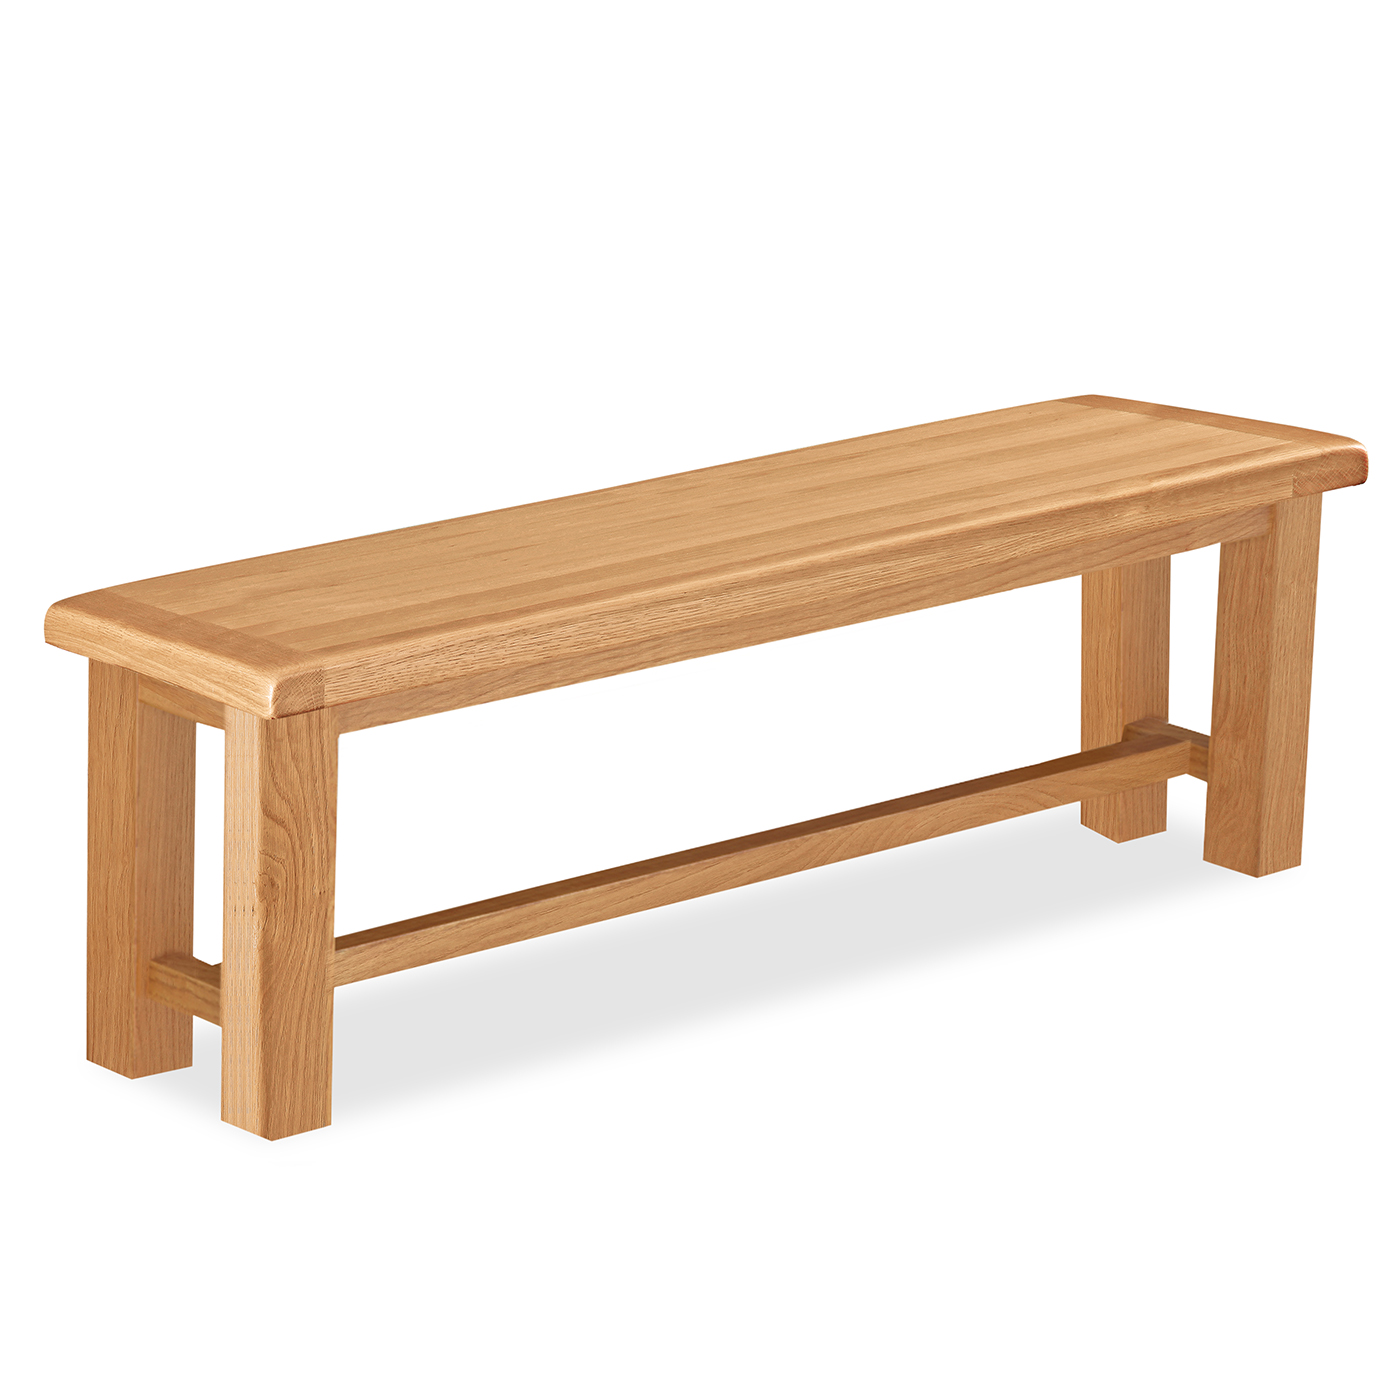 Salisbury Oak Furniture Small Bench